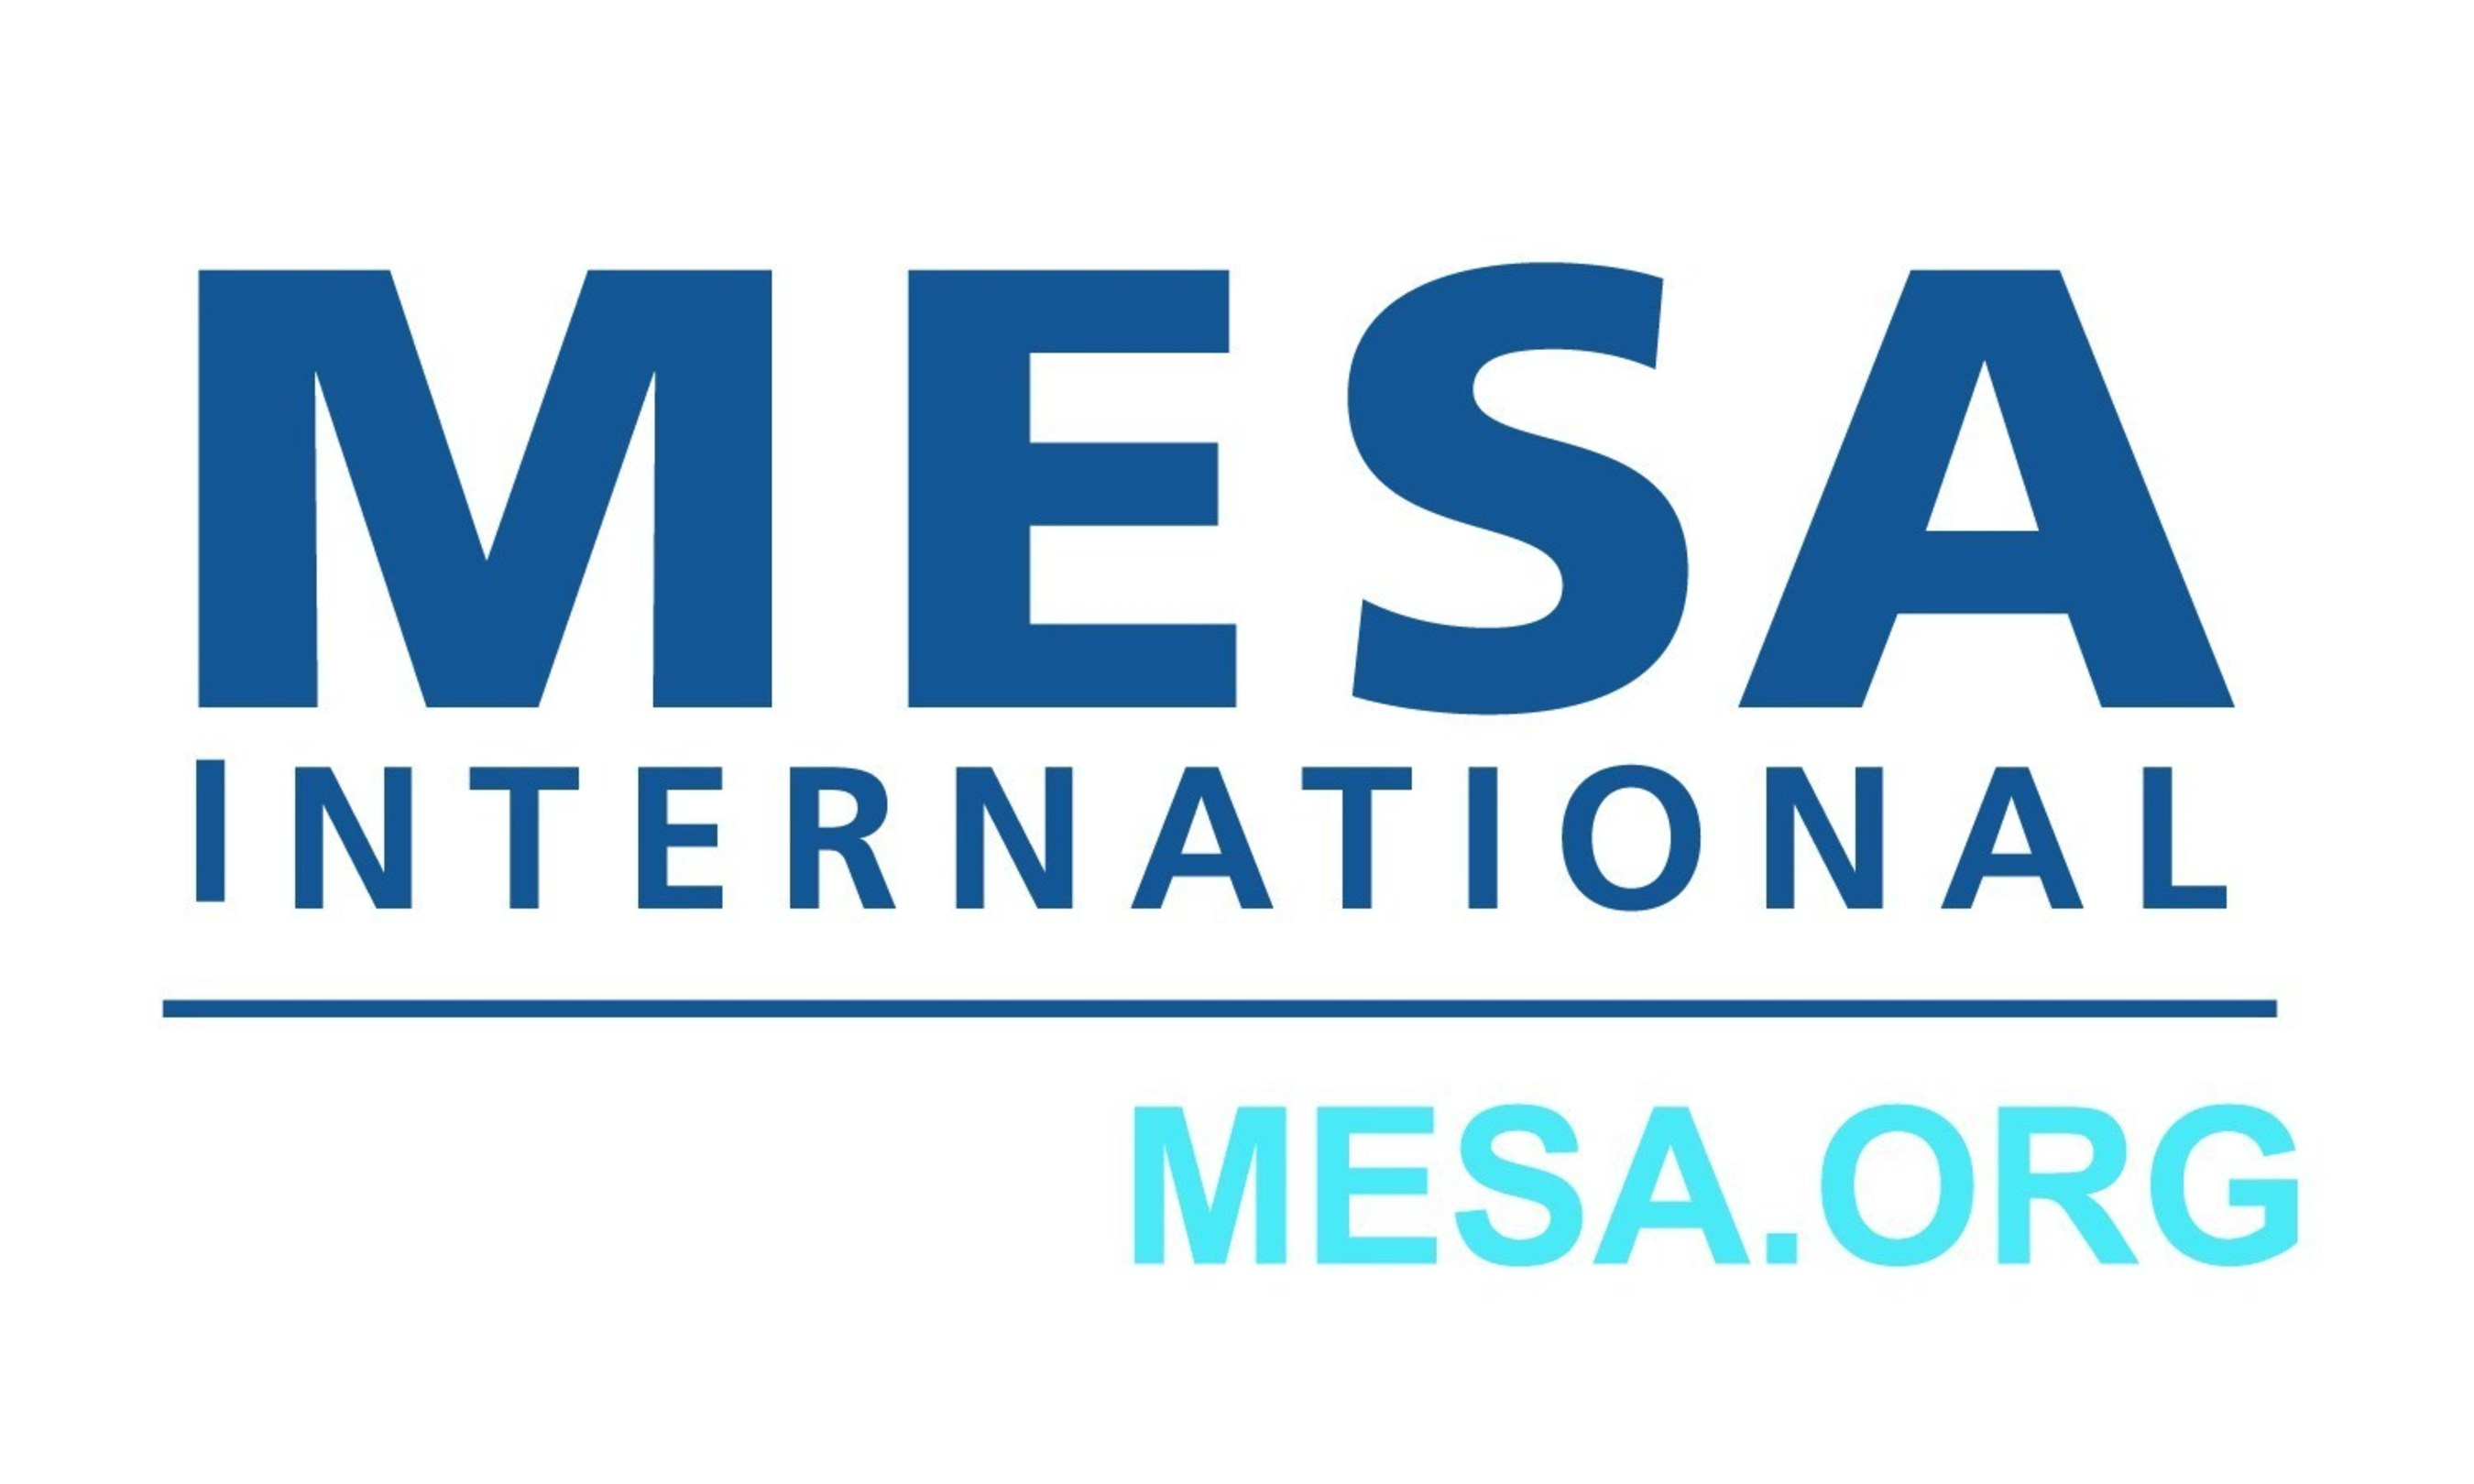 MESA (Manufacturing Enterprise Solutions Association) International is a global, not-for-profit community of manufacturers, producers, industry leaders and solution providers who are focused on improving Operations Management capabilities through the effective application of Information Technologies, IT-based solutions and best practices. For more information about MESA, visit www.mesa.org.